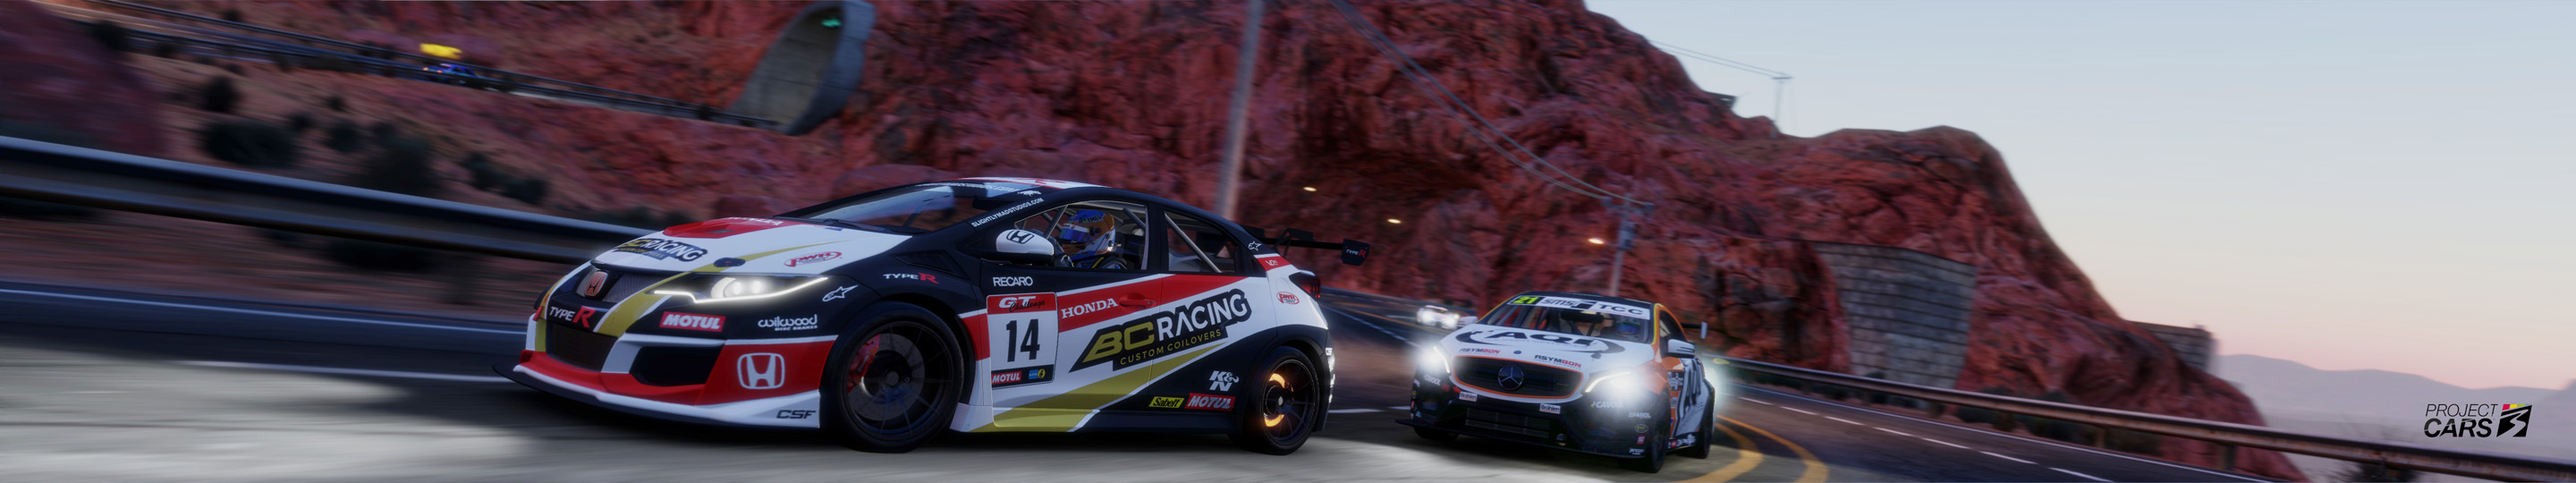 6 PROJECT CARS 3 MONUMENT CANYON with PIR RANGE CARS copy.jpg